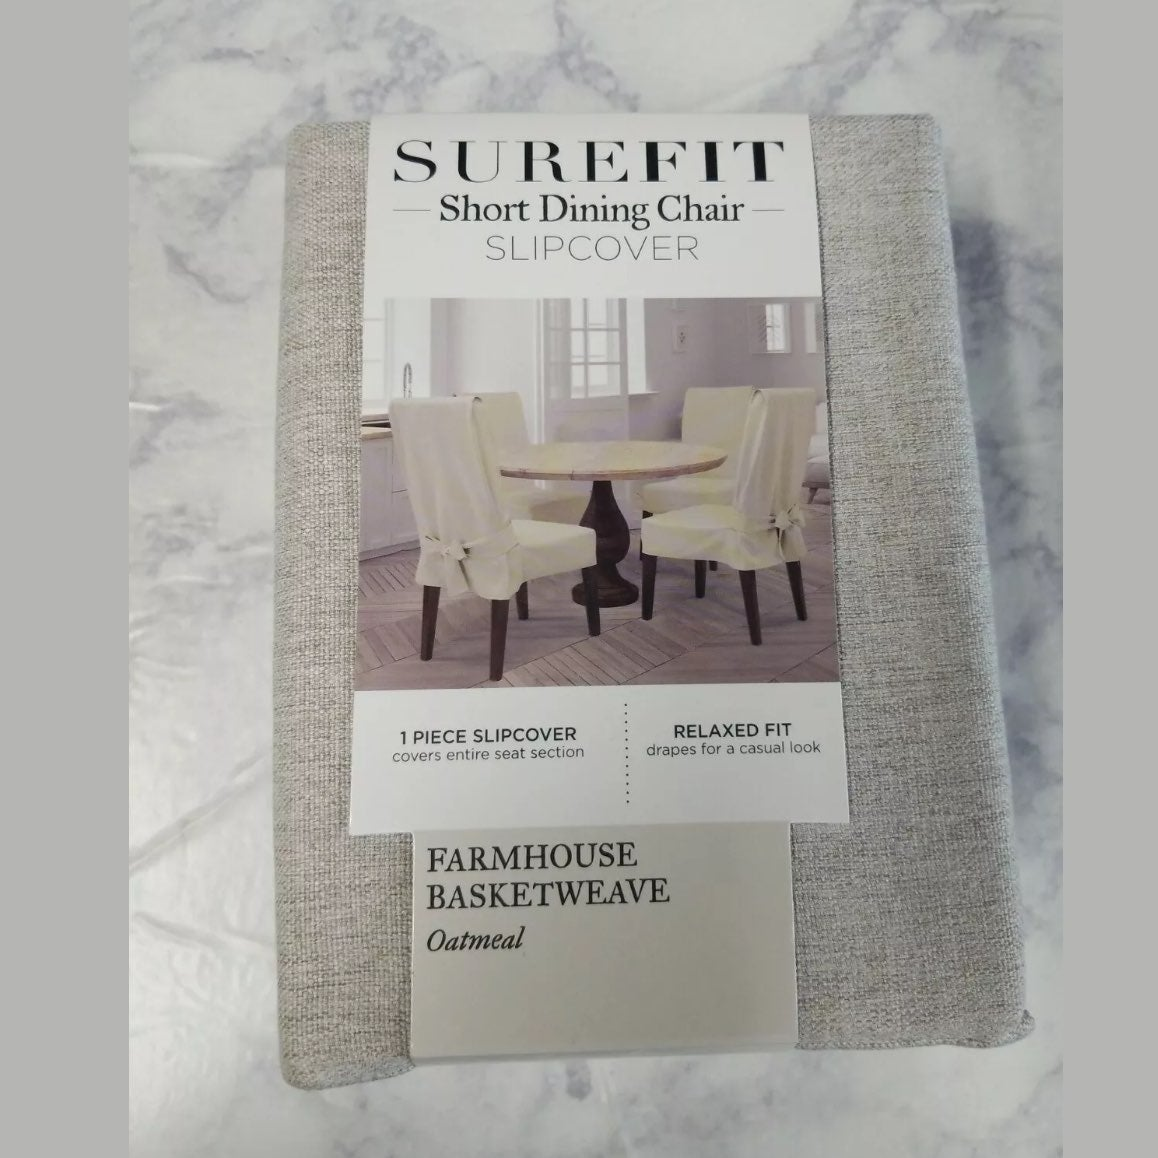 Surefit Short Dining Chair Slipcover New